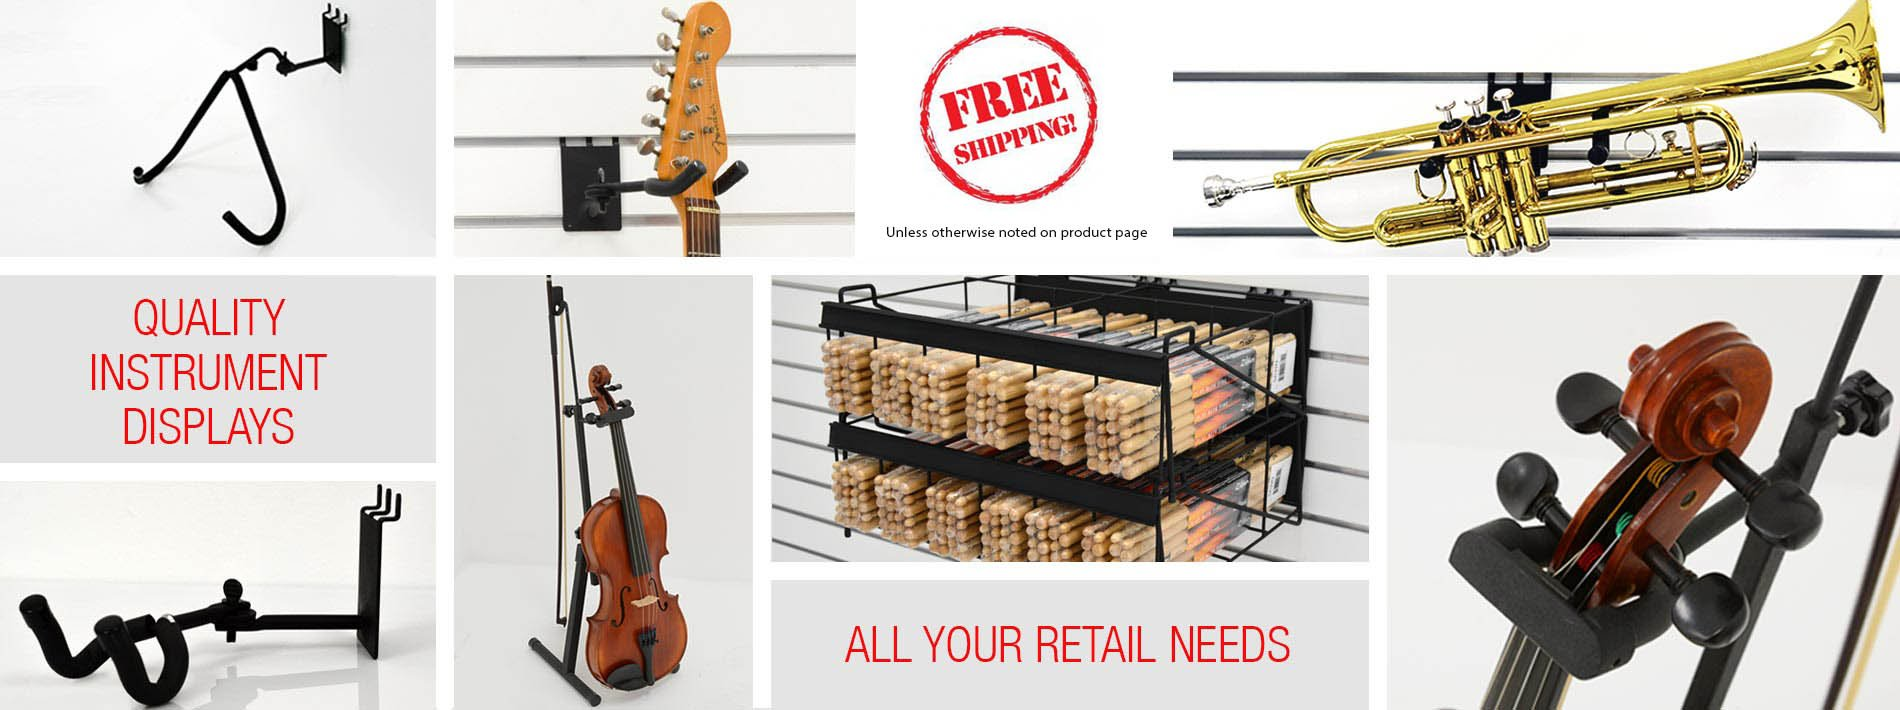 Image Great prices musical instrument displays